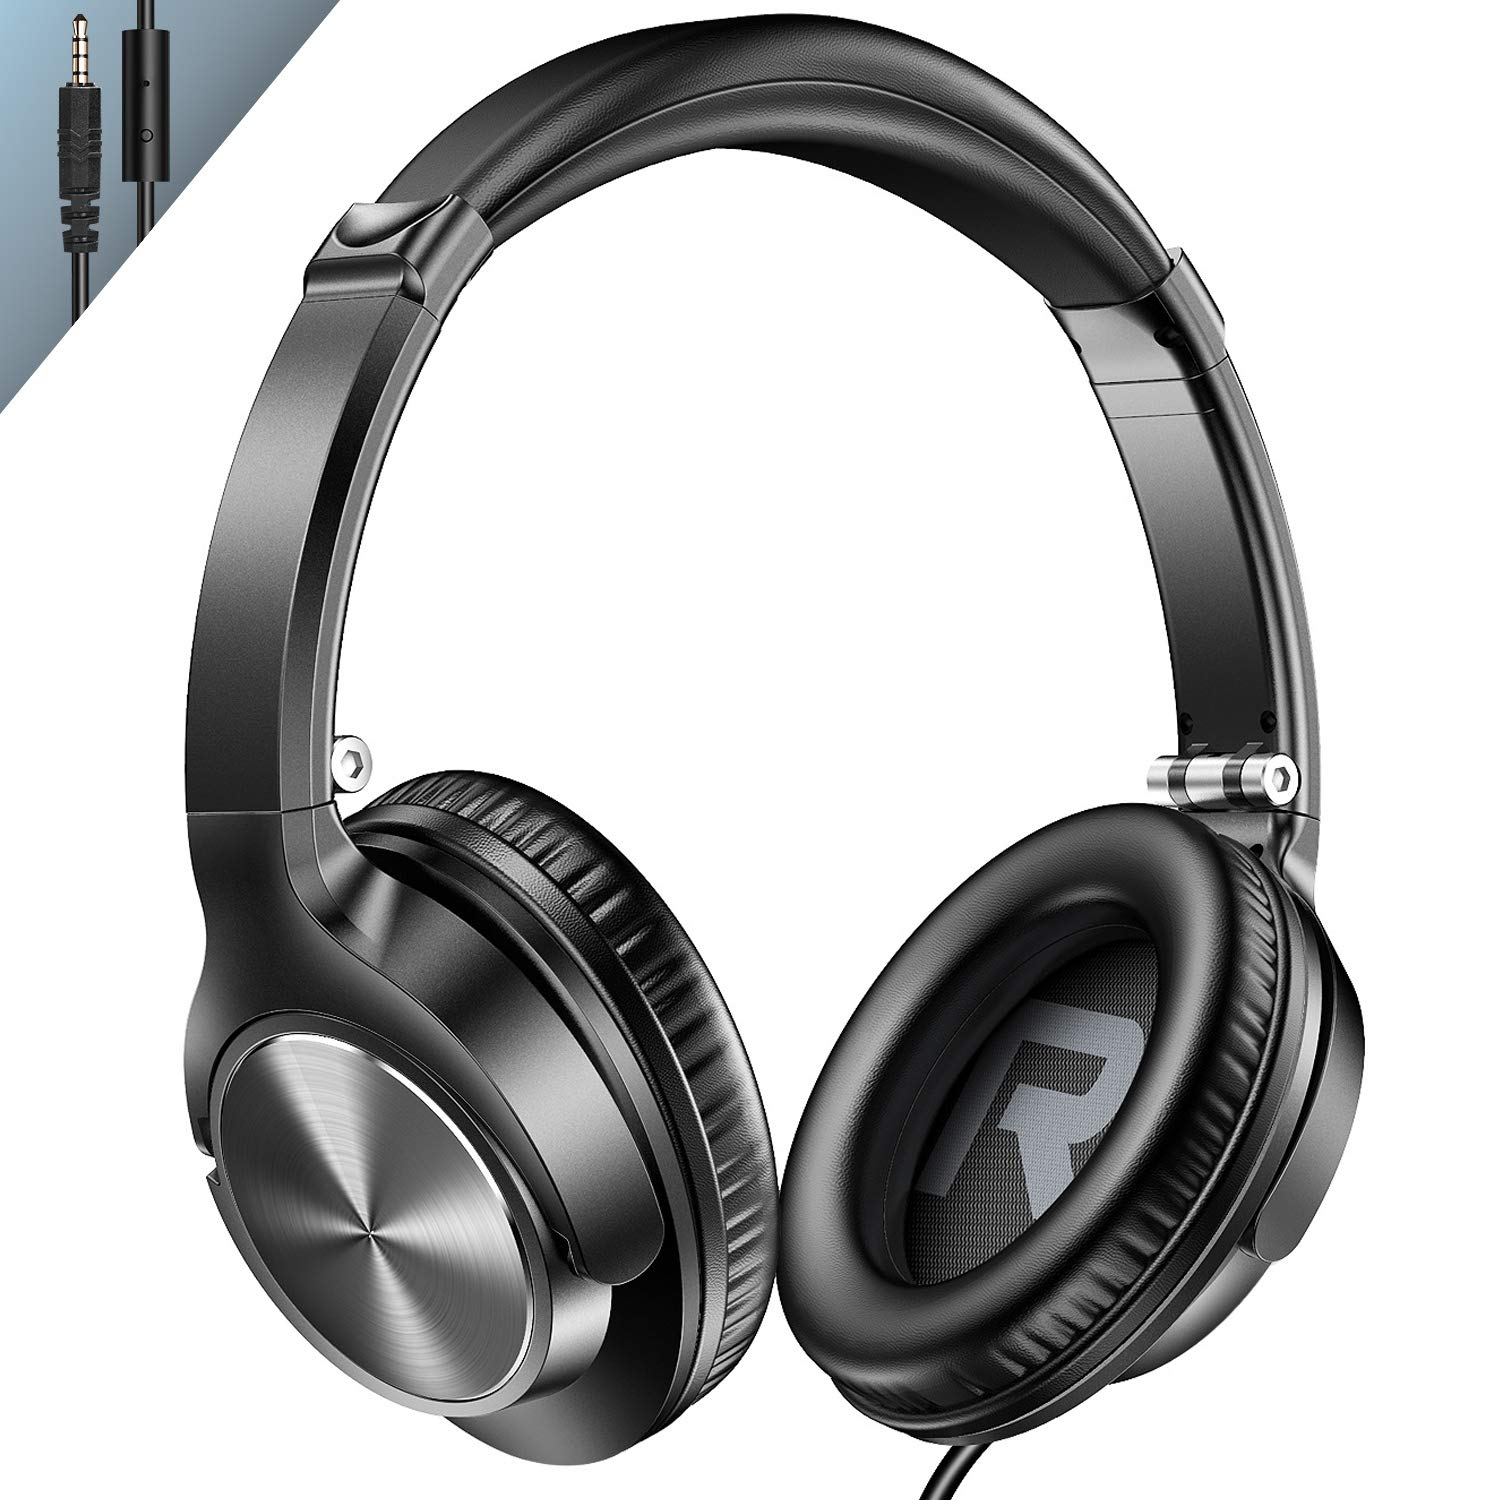 Vogek Over Ear Headphones with Mic, Lightweight Portable Foldable Stereo Bass Wired Headphones with 1.5M Tangel Free Cord and Microphone for Cellphone Tablet Laptop Computer- Black